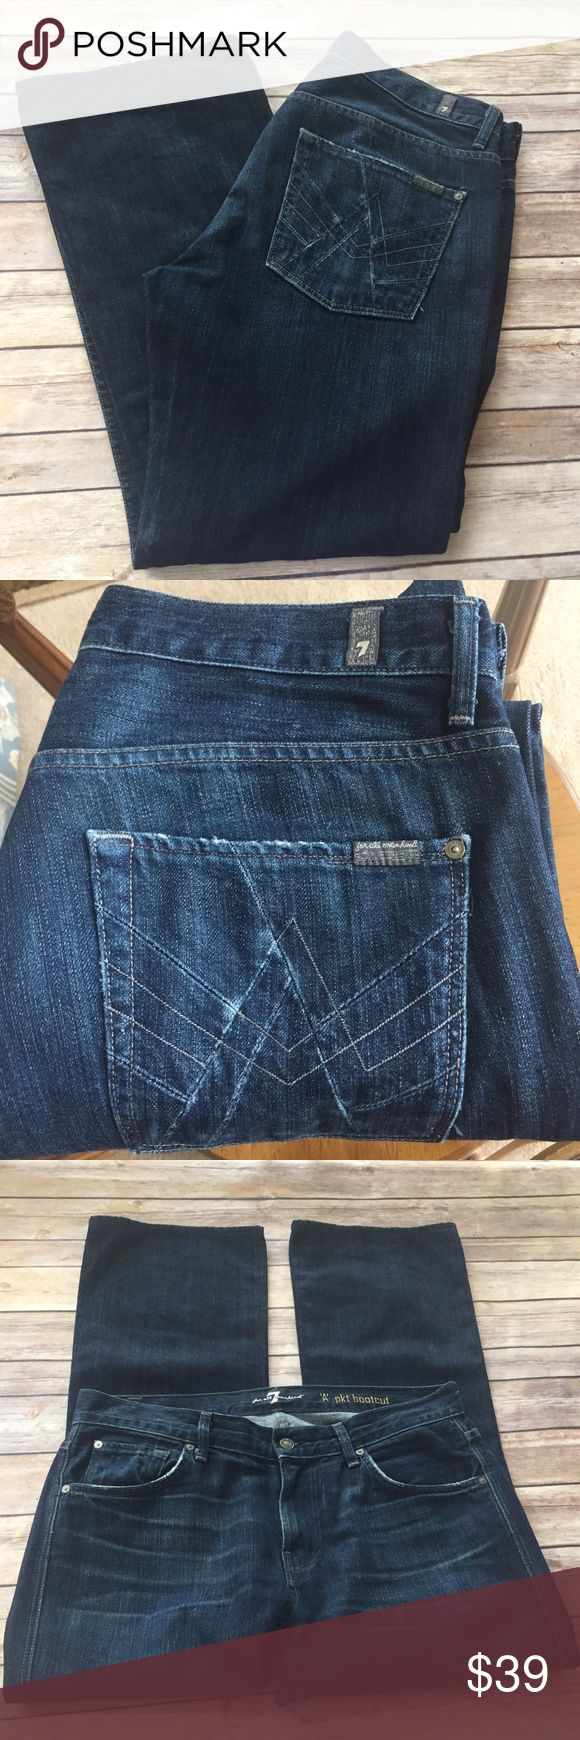 """7 For All Mankind A PKT Distressed Dark Jeans 33 These are Beautiful 7 For All Mankind """"A"""" Pocket Boot Cut Lightly Distressed Dark Wash Women's Jeans  They are in Excellent Condition  Material 100% Cotton Color Dark Wash Style ATE530967 Lightly Distressed Bootcut 7 For All Mankind Jeans Boot Cut"""